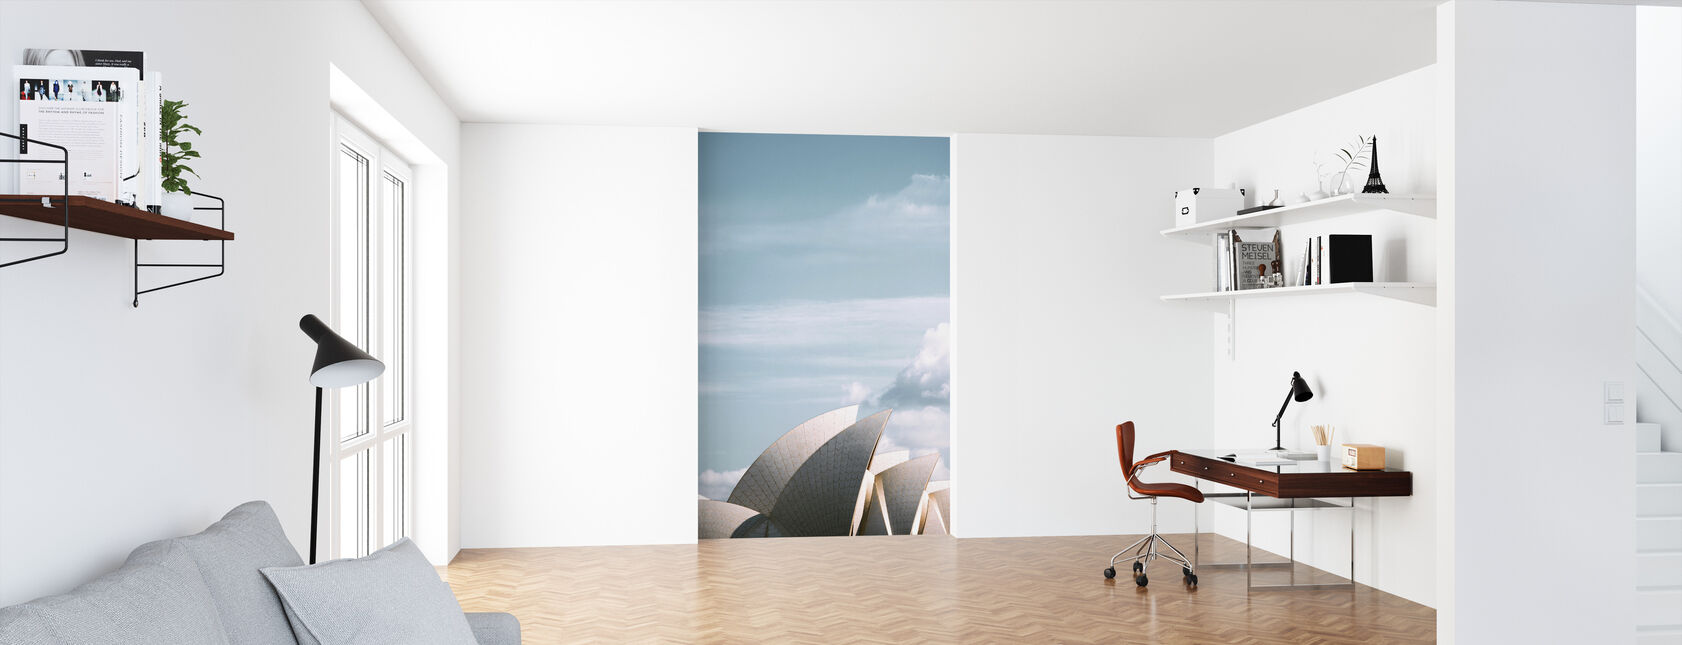 Sydney Opera House - Wallpaper - Office